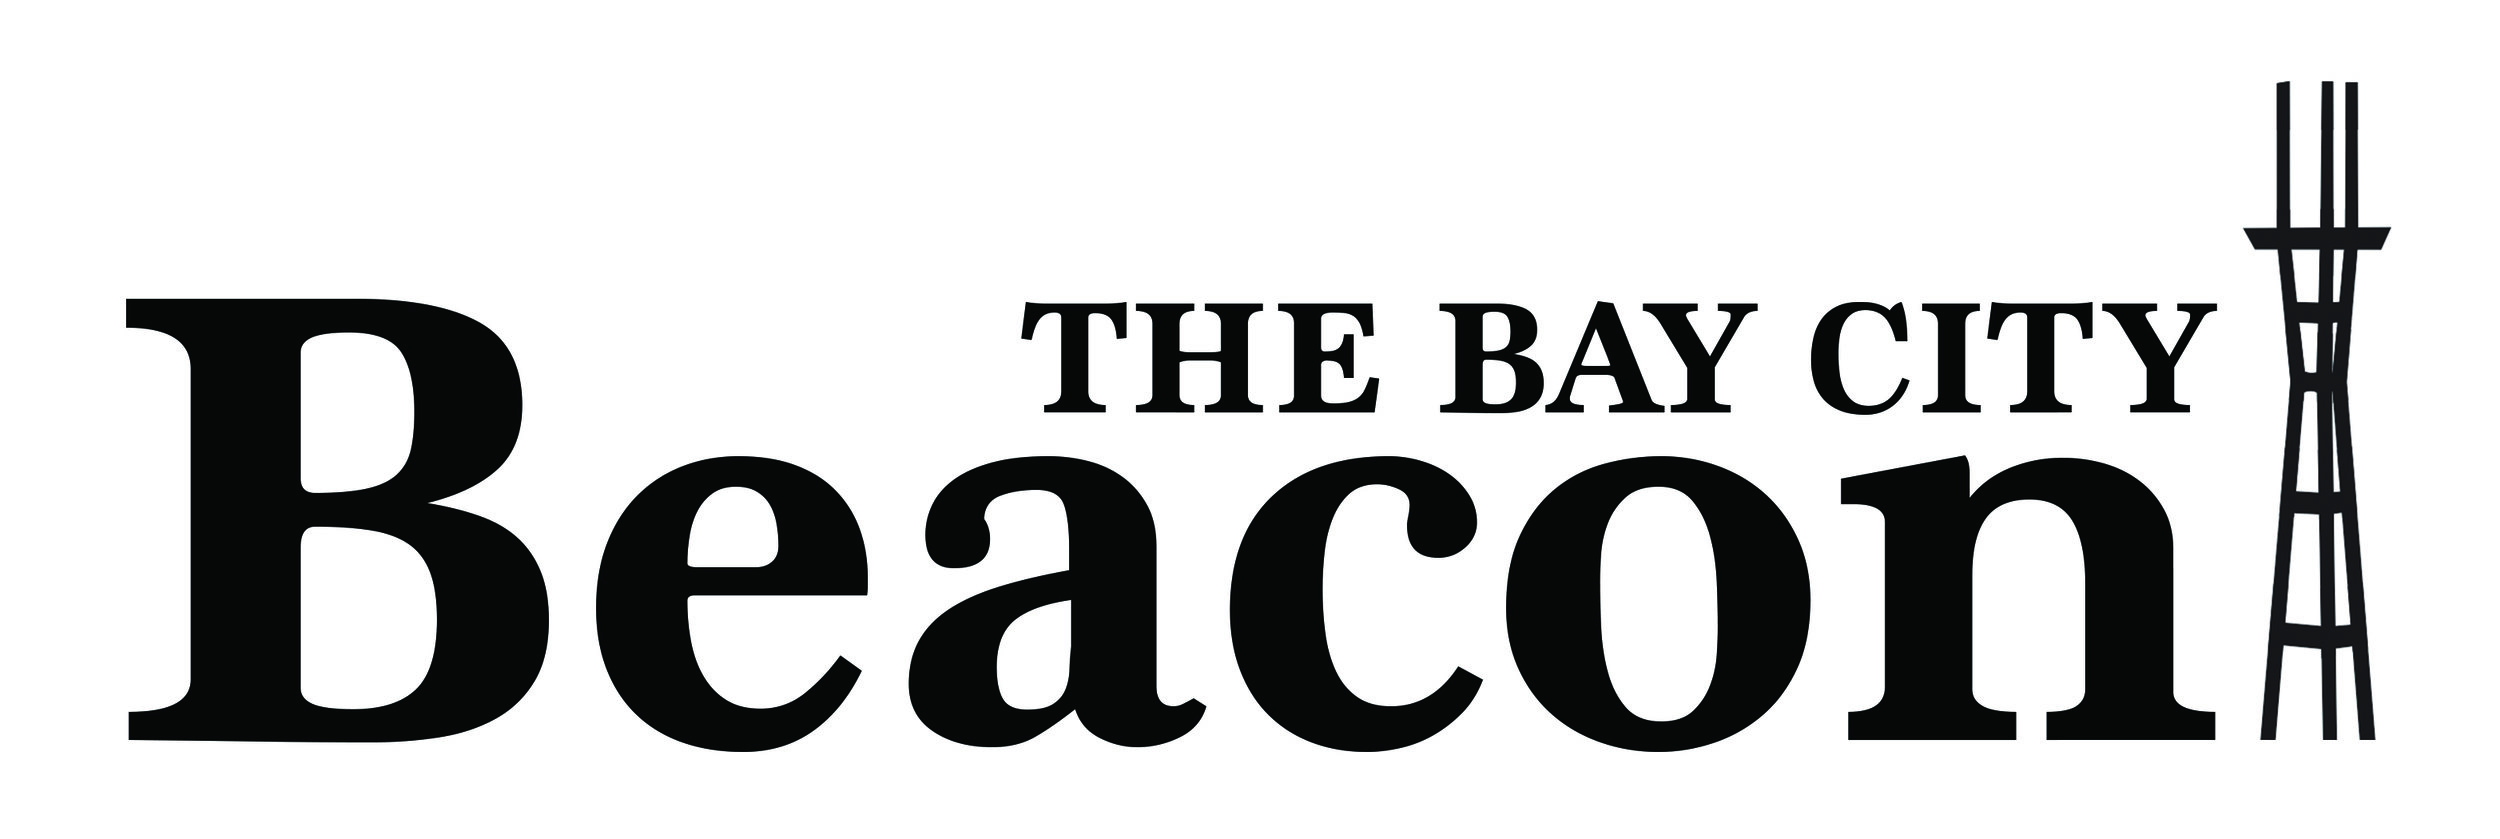 Topical Cannabis: Can California finally get cannabis regulations right? | The Bay City Beacon | May 13, 2019